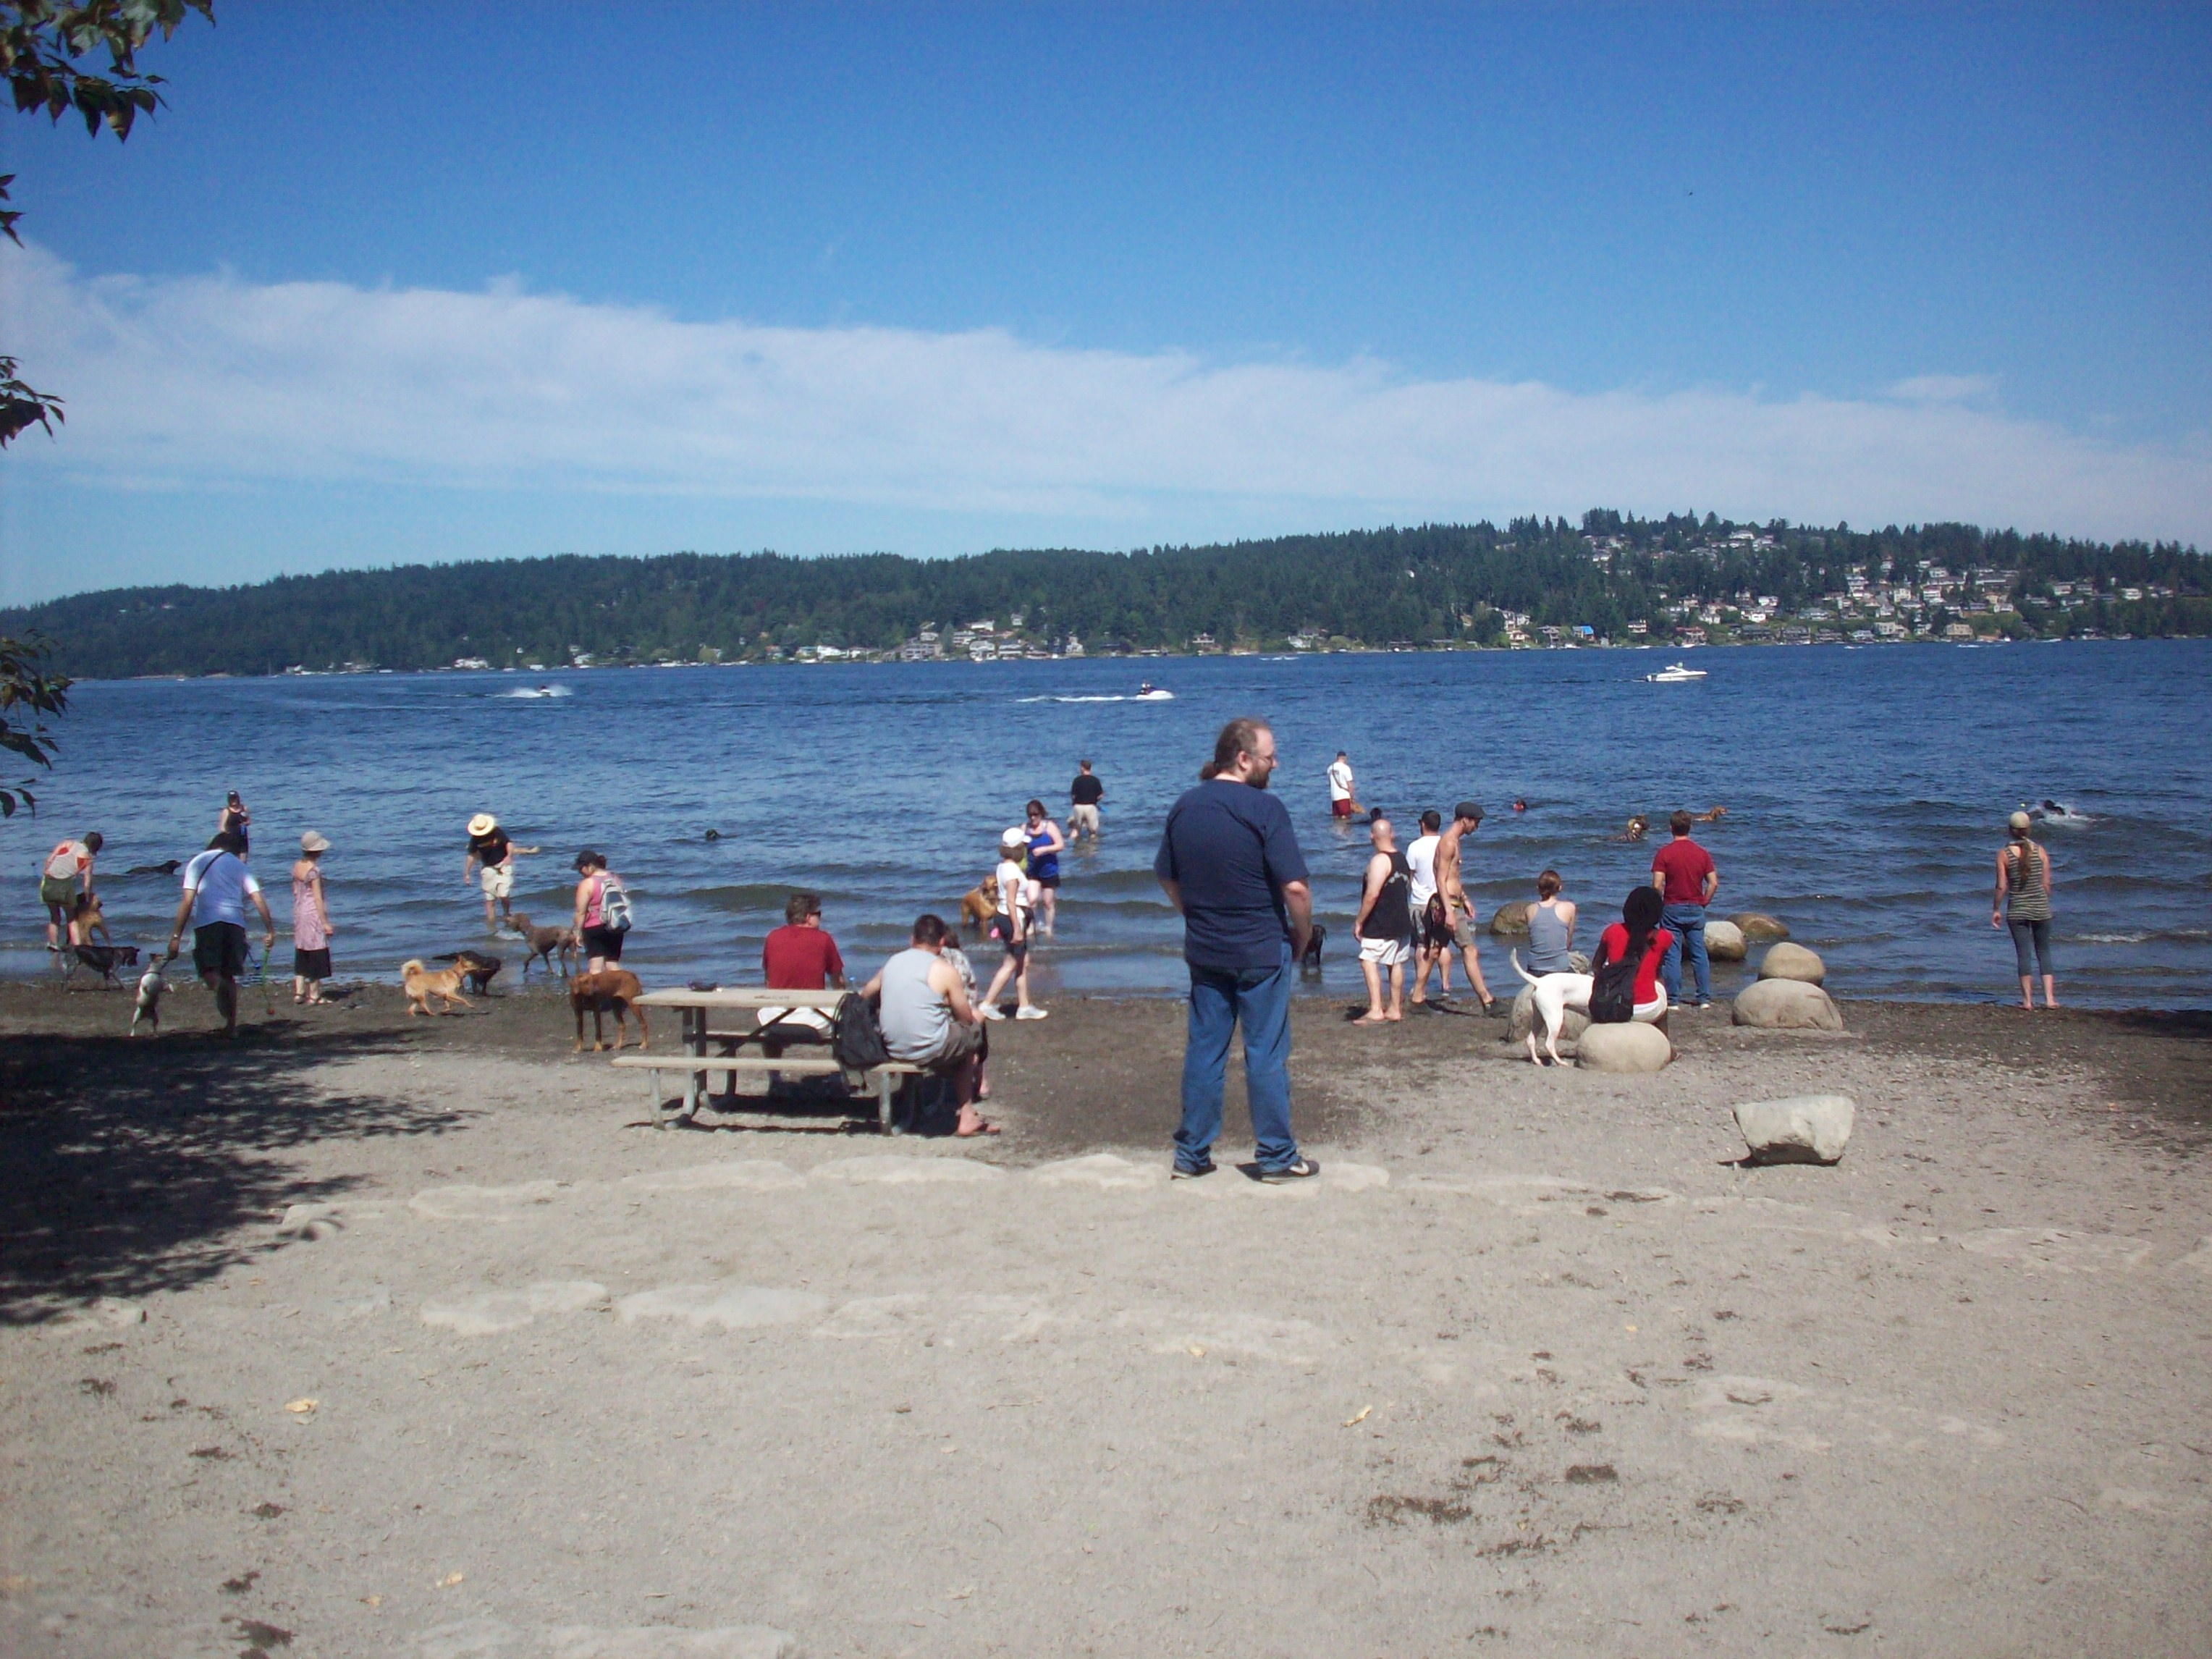 The Dog Beach at Magnussen Park, Seattle